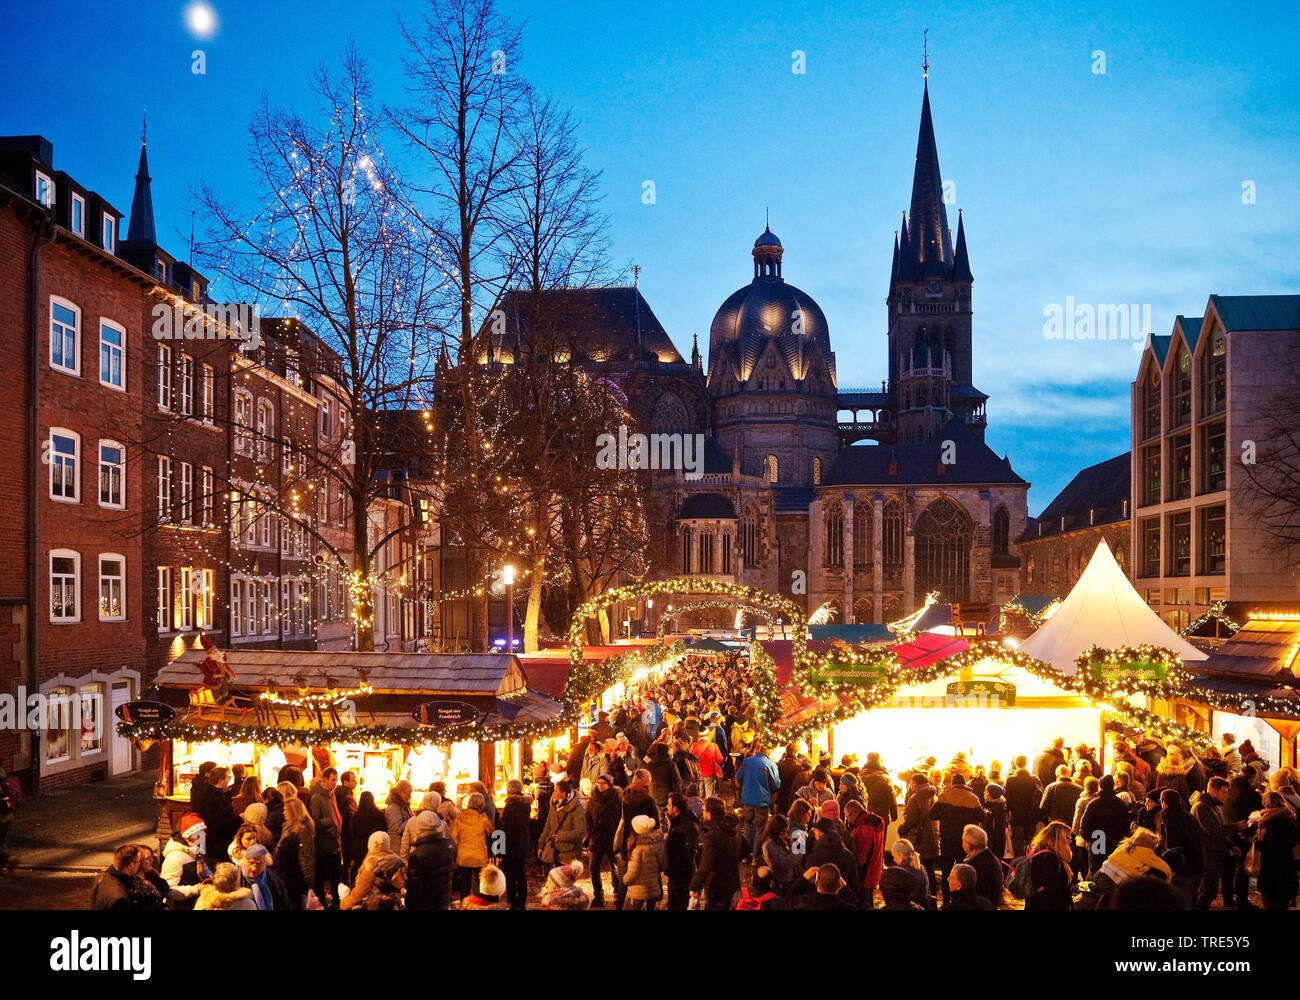 Christmas market in front of the Aachen Cathedral in the evening, Germany, North Rhine-Westphalia, Aix-la-Chapelle Stock Photo